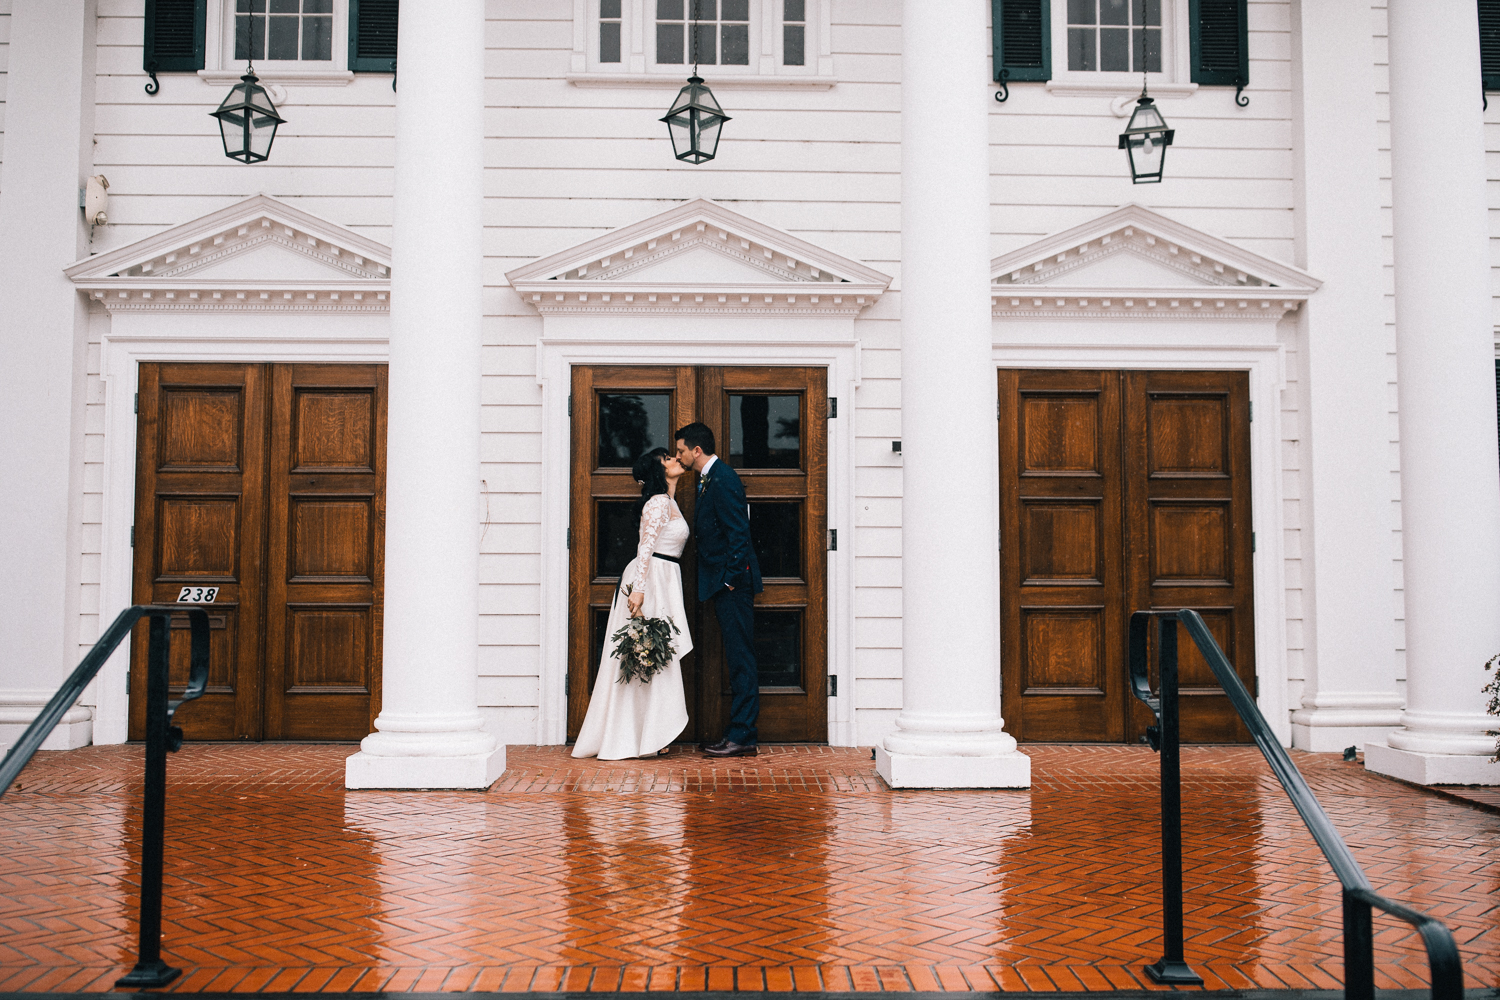 2019_05_ 182019.05.19 Lisa + Eddie South Bay Wedding Blog Photos Edited For Web 0088.jpg